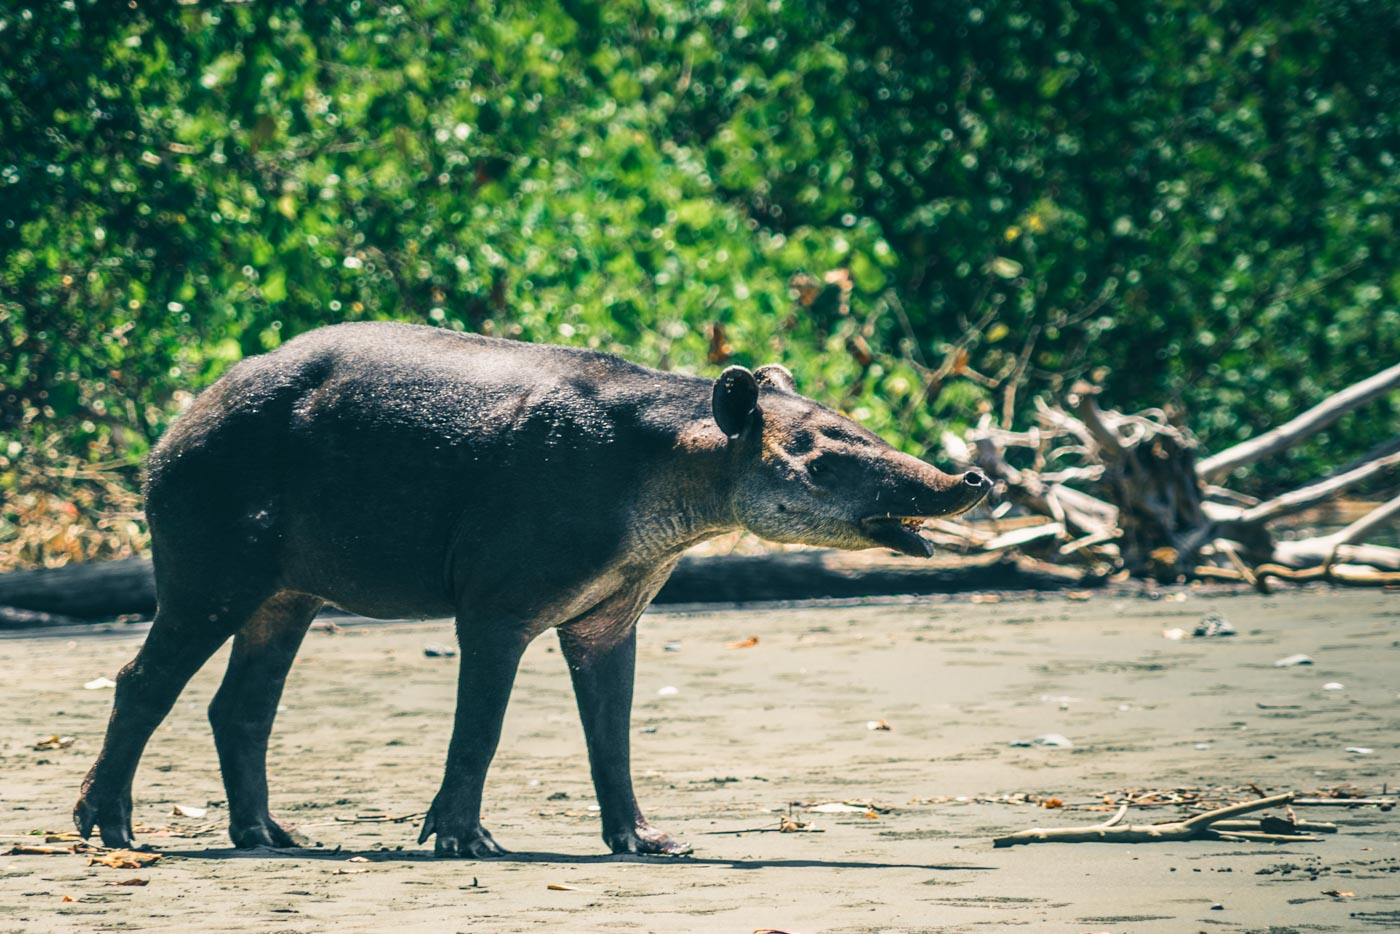 Visit Corcovado National Park: Baird's Tapir, one of the rarest mammals to see in Corcovado National Park